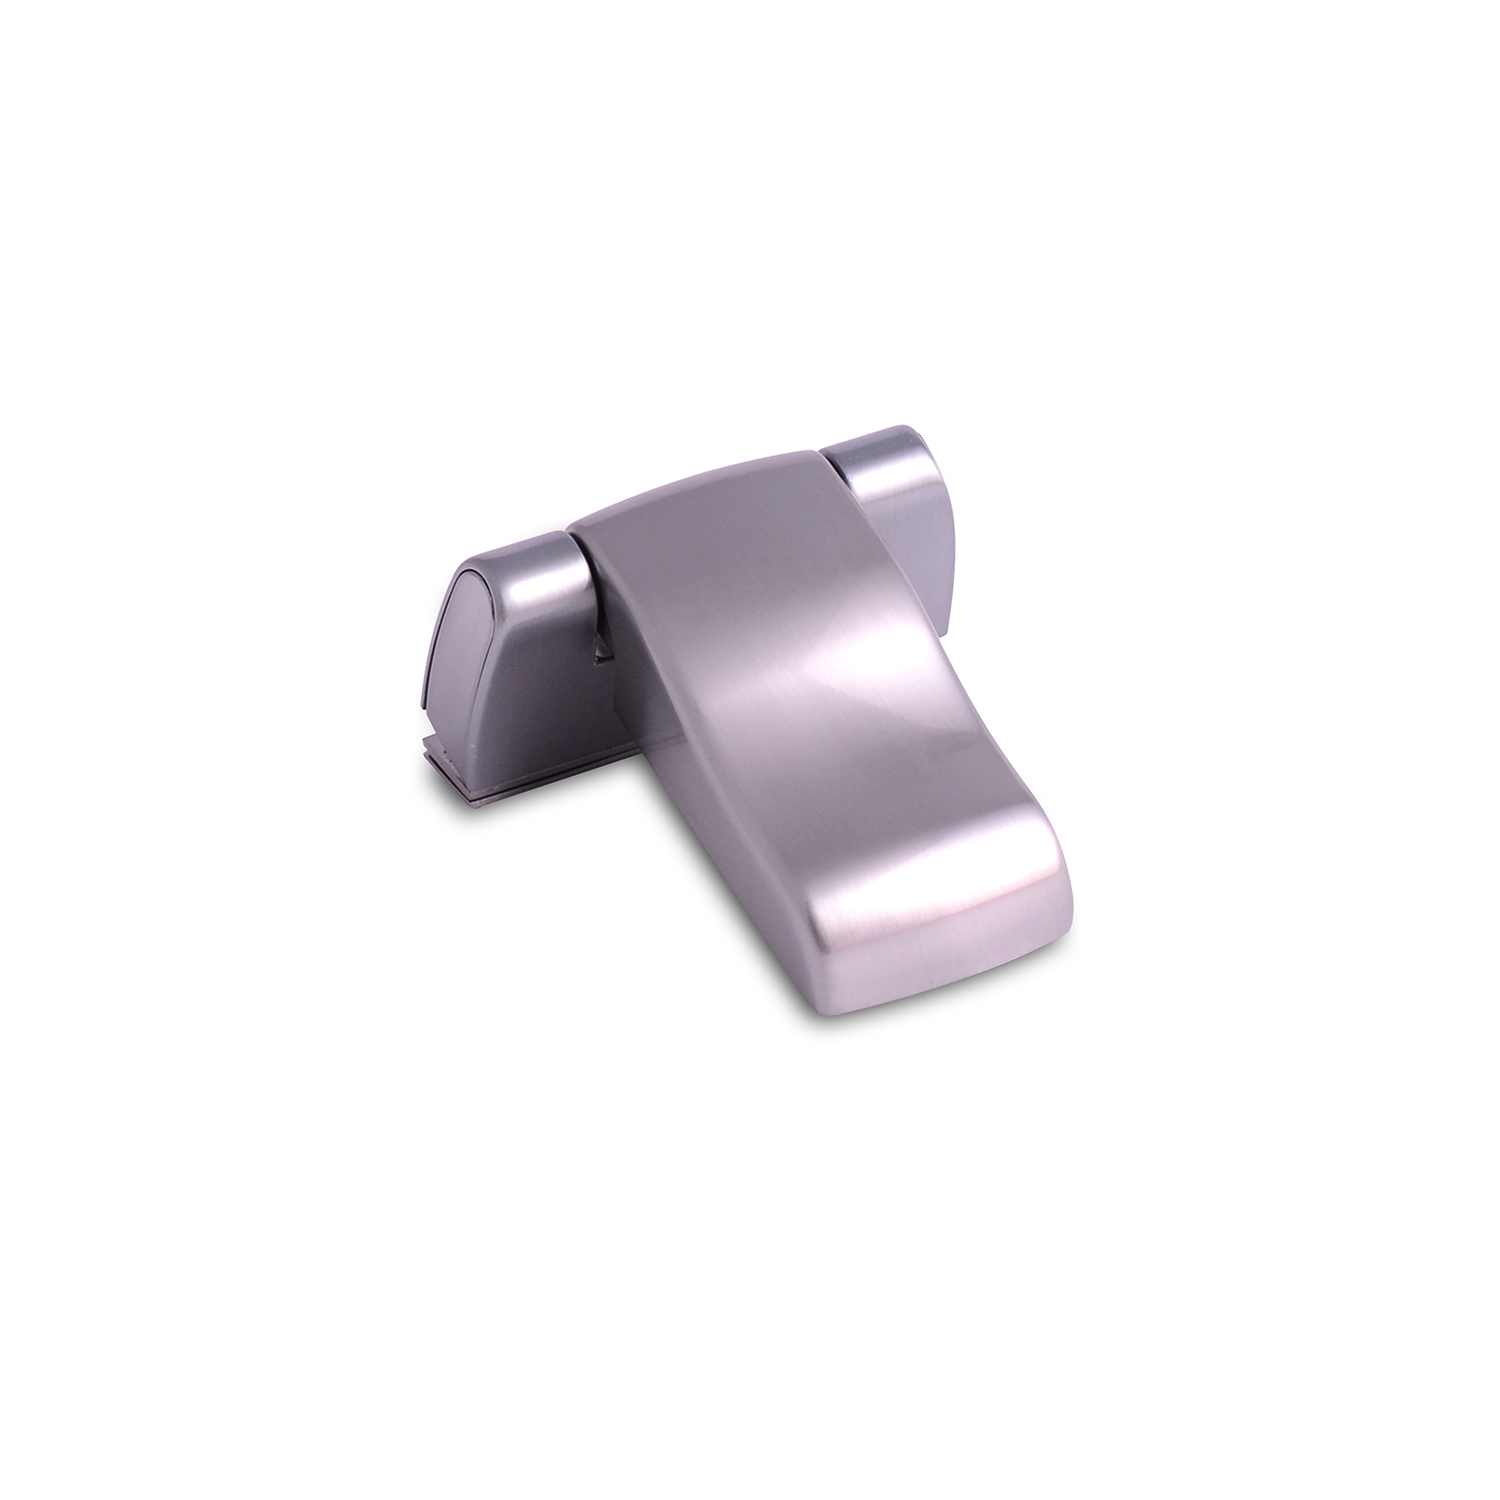 Anchorage Heavy Duty High Security Flag Door Hinge